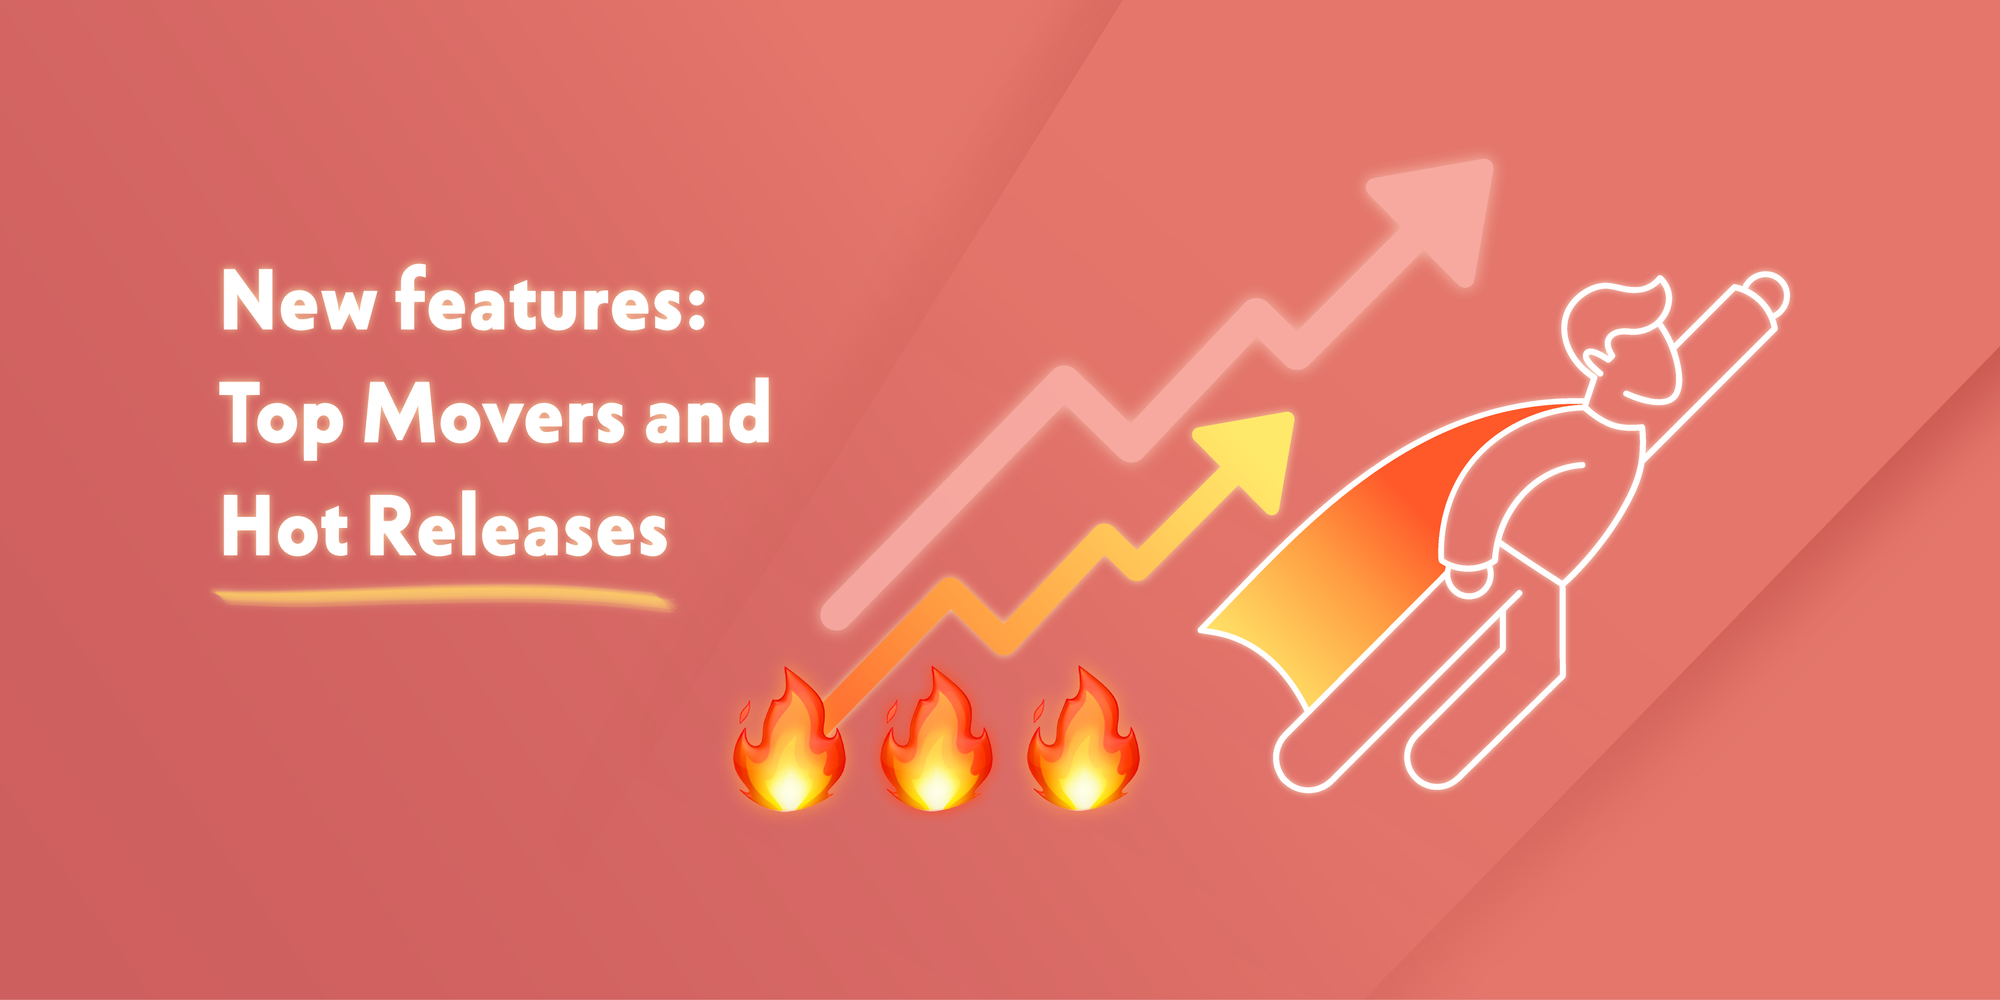 New features: Top Movers and Hot Releases sections